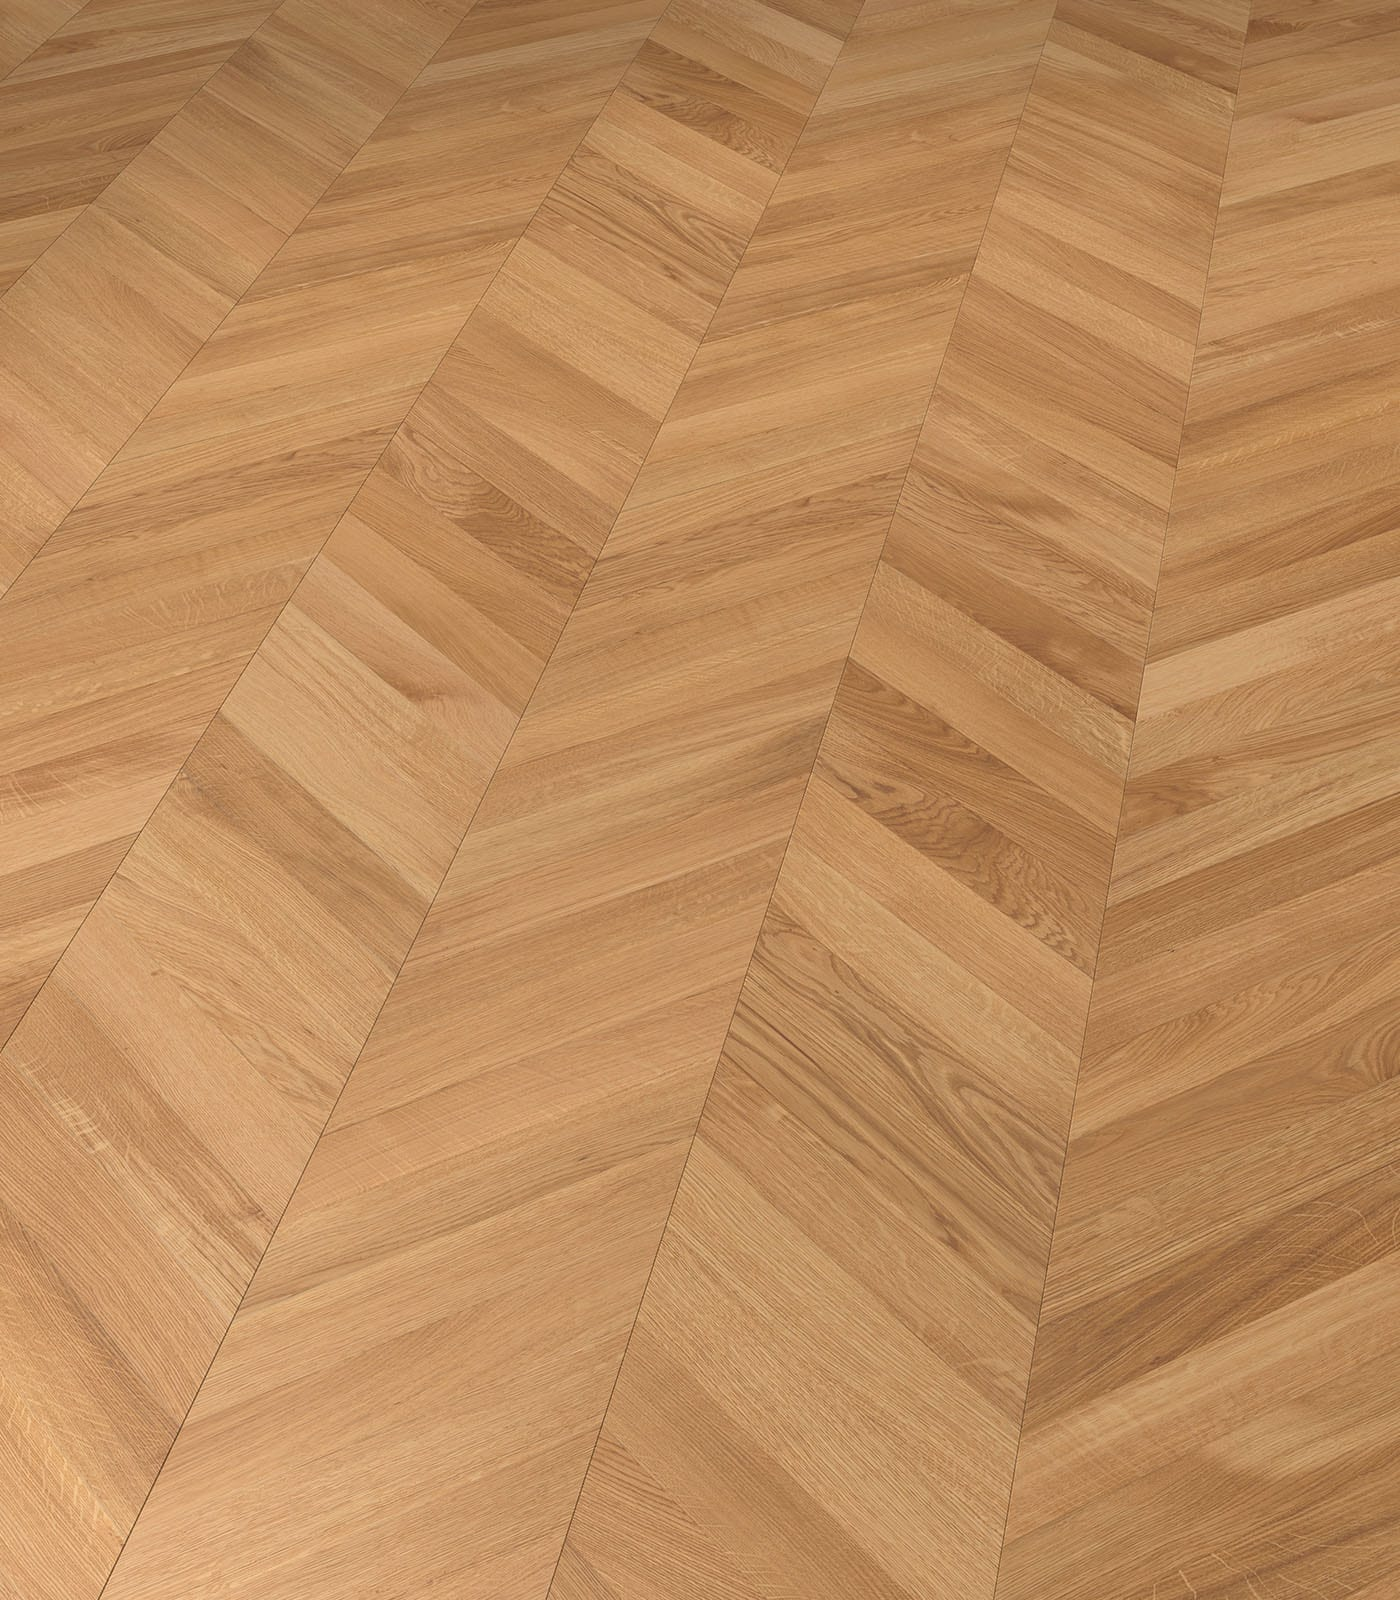 European Oak Chevron Connex floors-Fashion Collection-angle